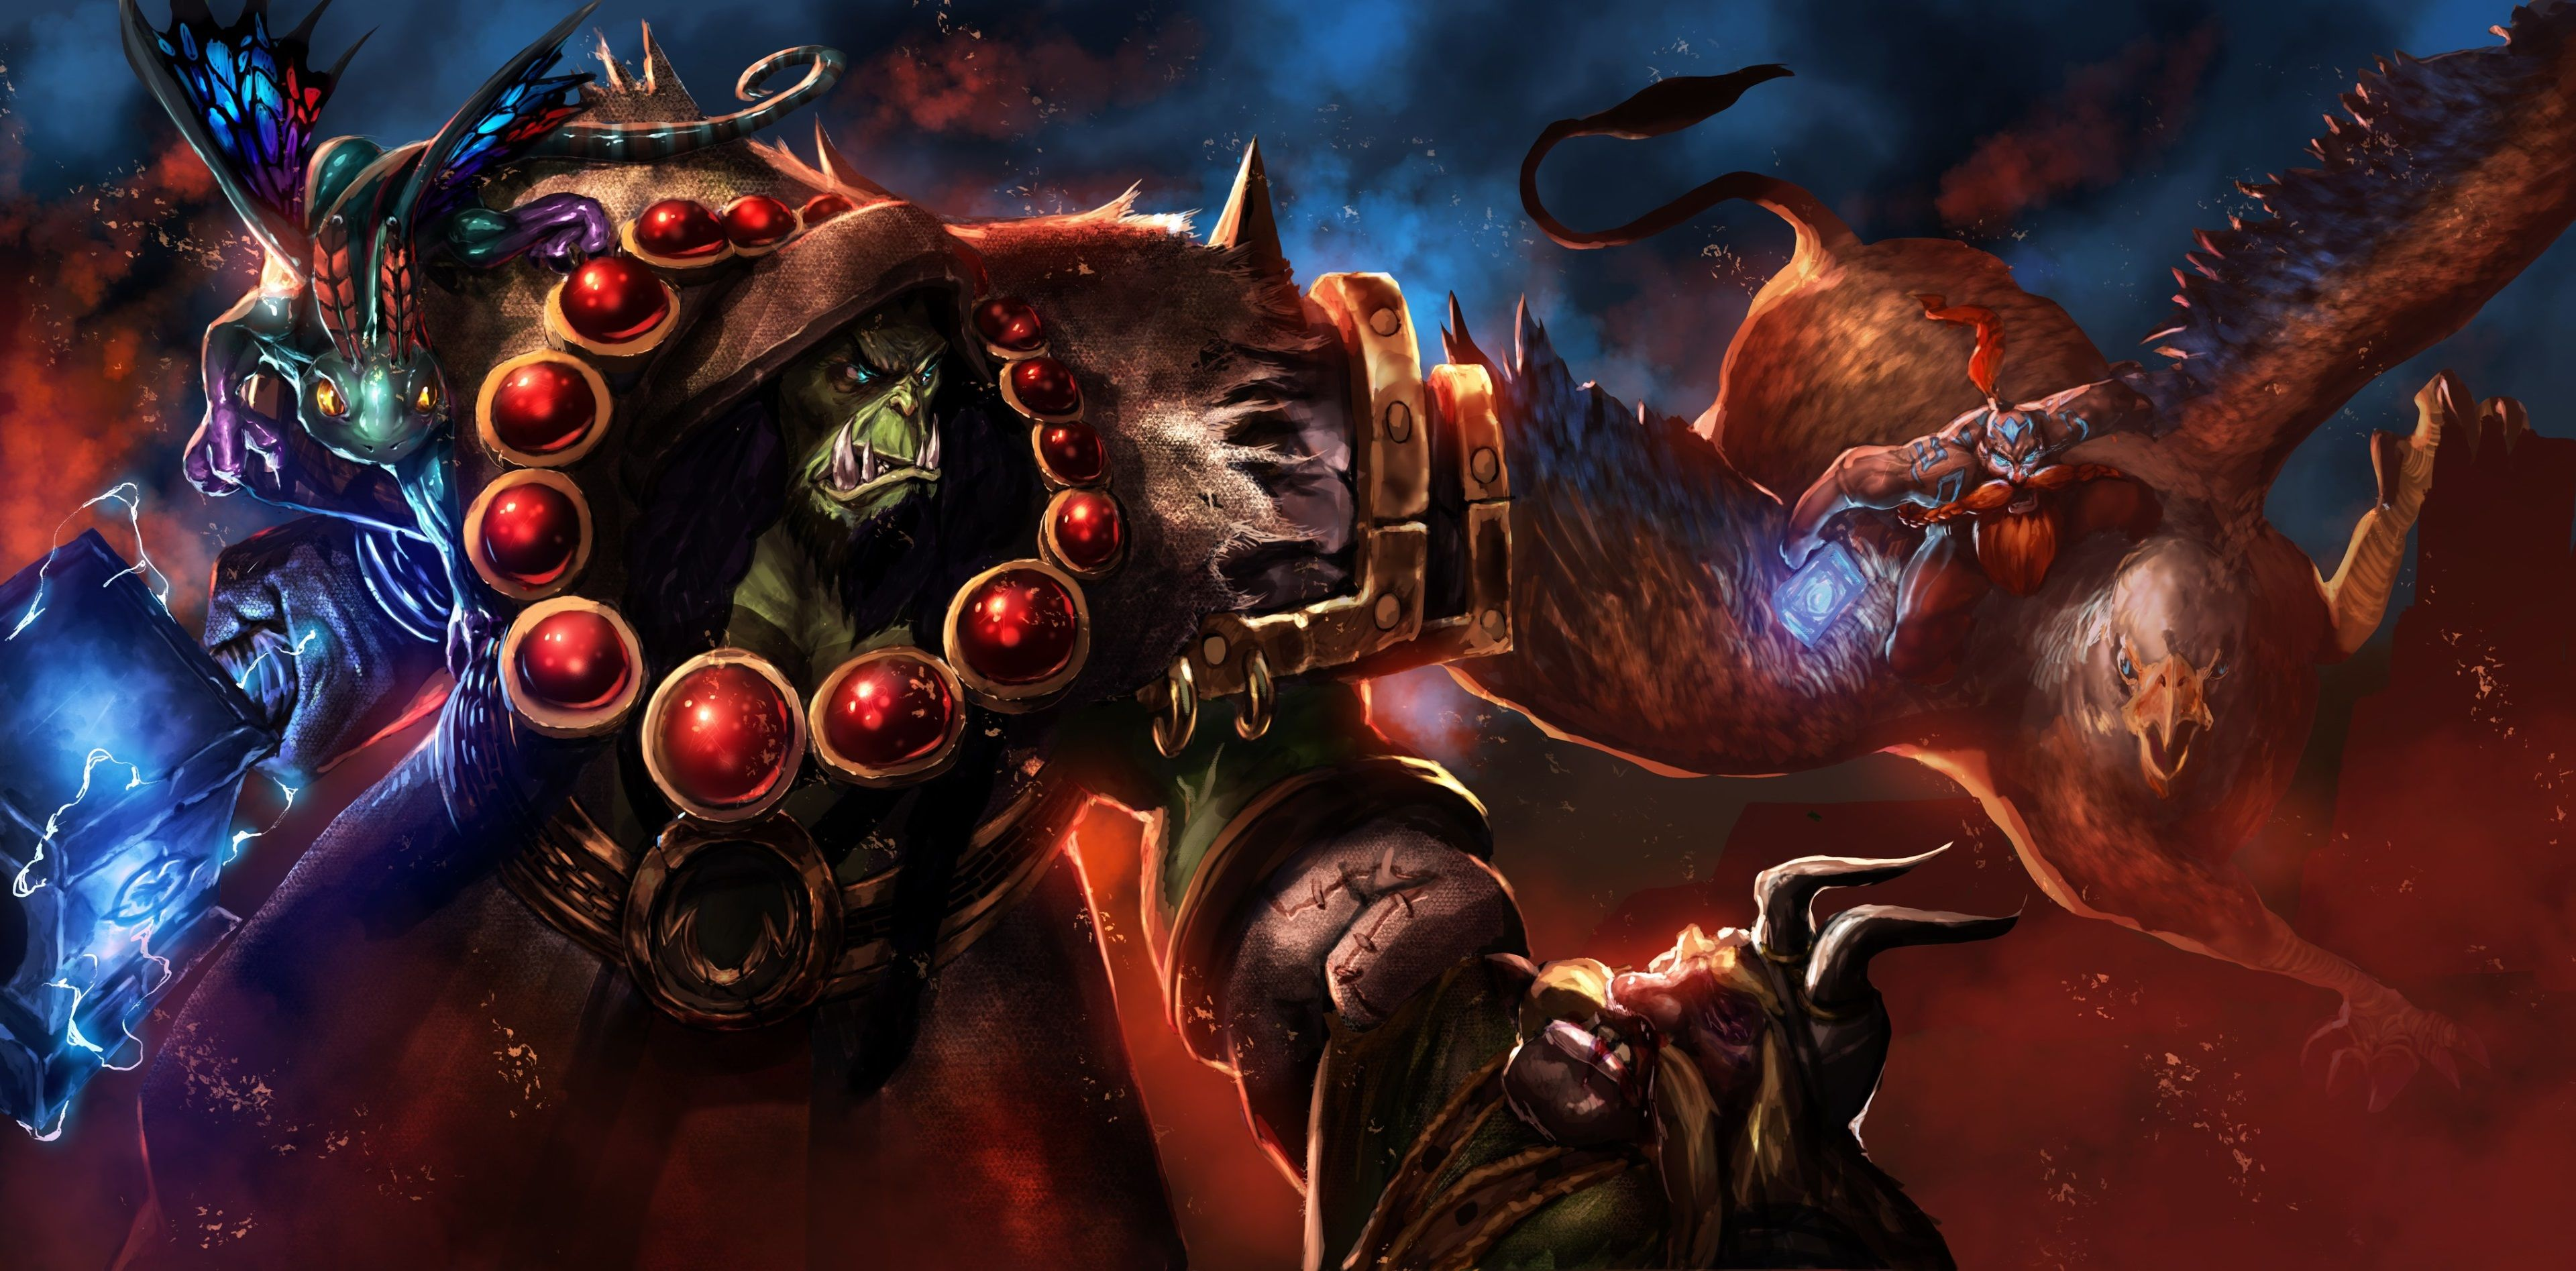 Heroes Of The Storm 4k Wallpapers Top Free Heroes Of The Storm